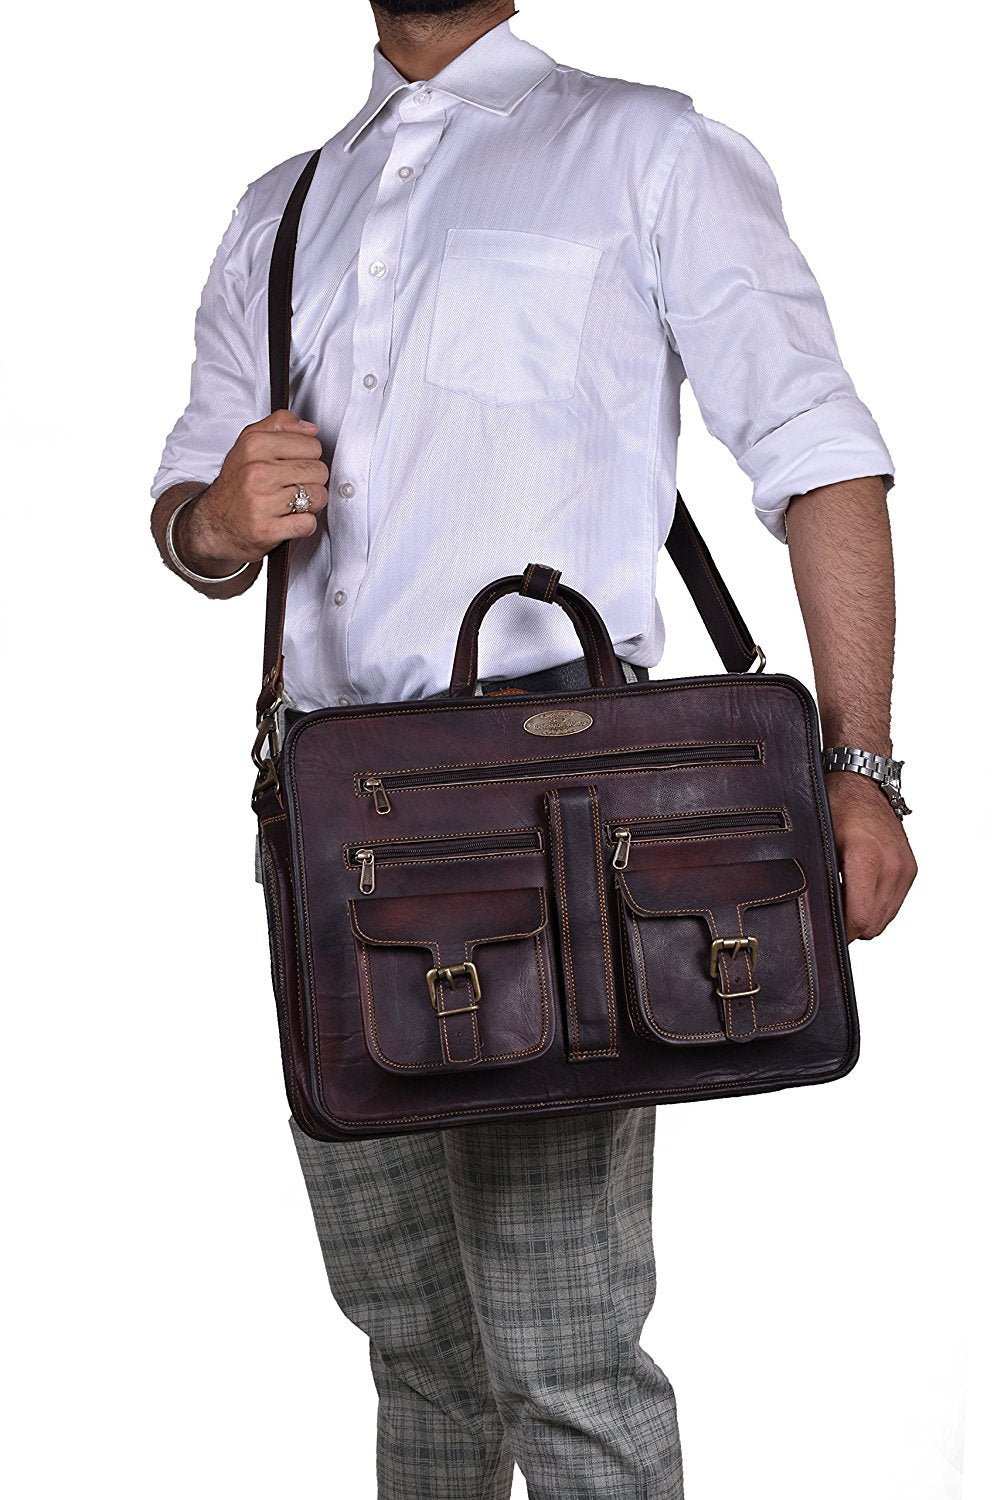 Full Grain Leather Briefcase with Top Handle and Adjustable Strap